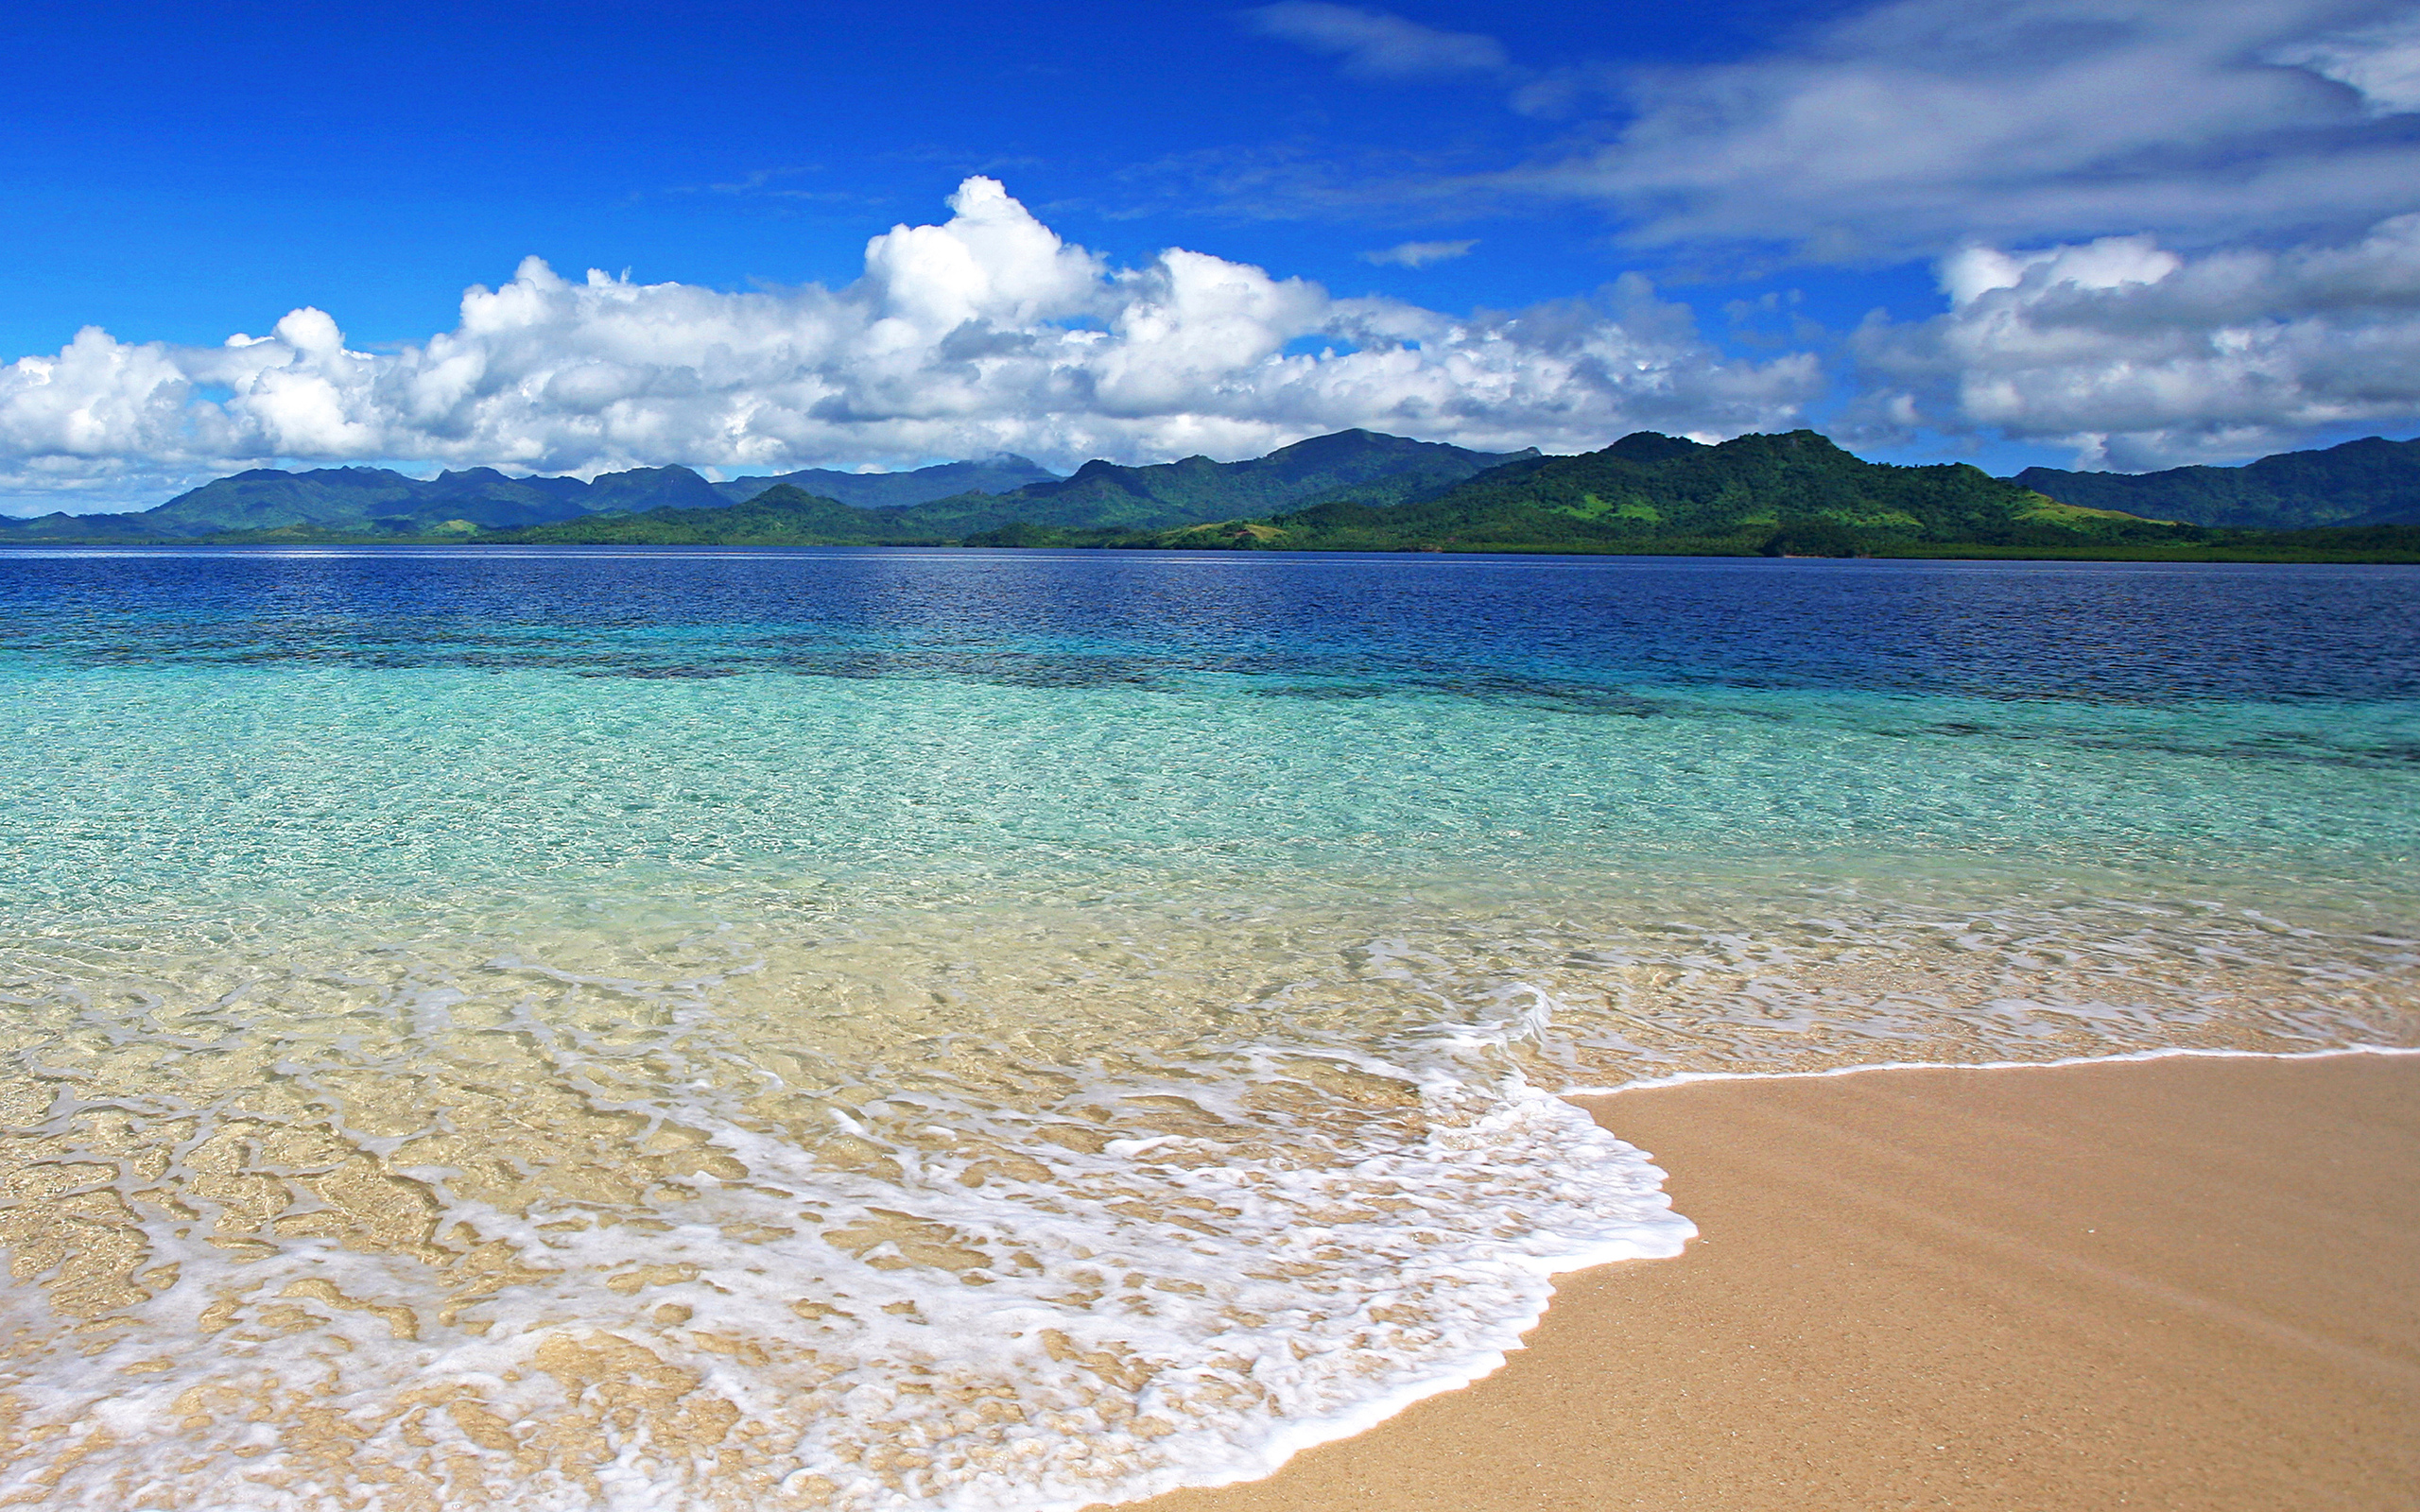 moving beach backgrounds for wallpaper - photo #48